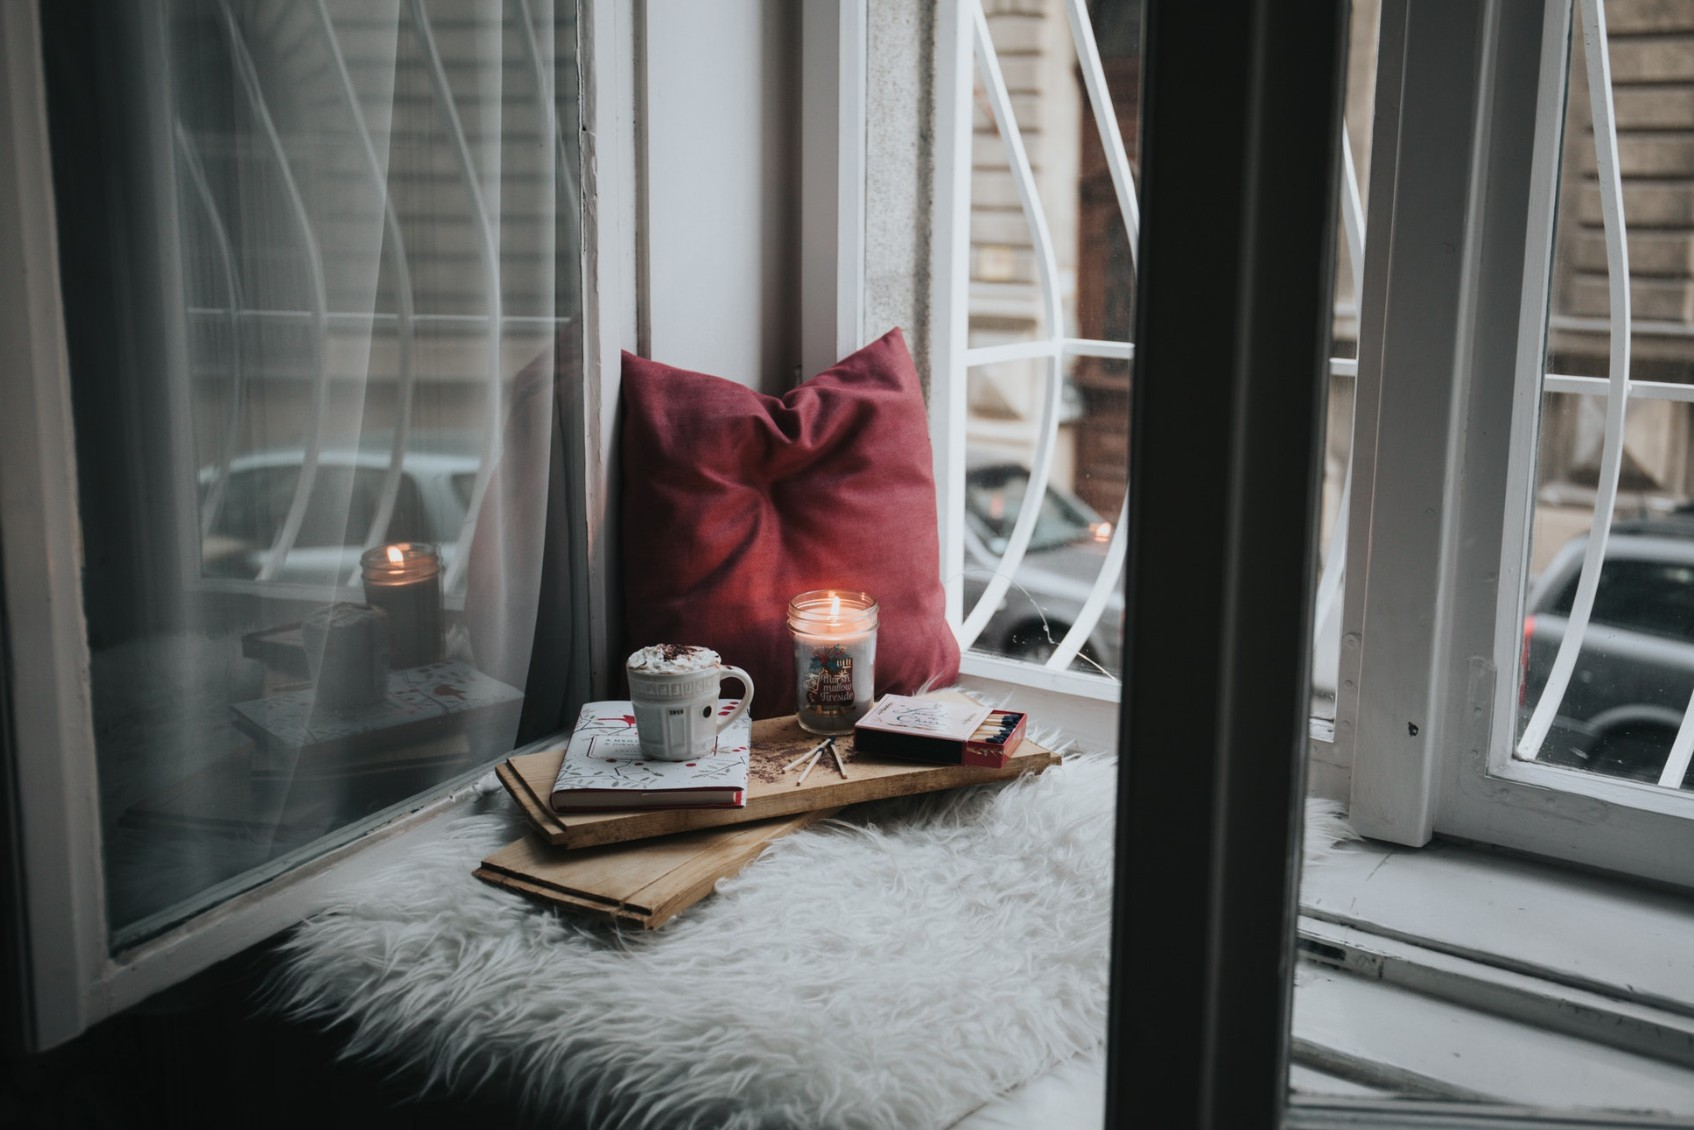 window sill with pillow book and candle